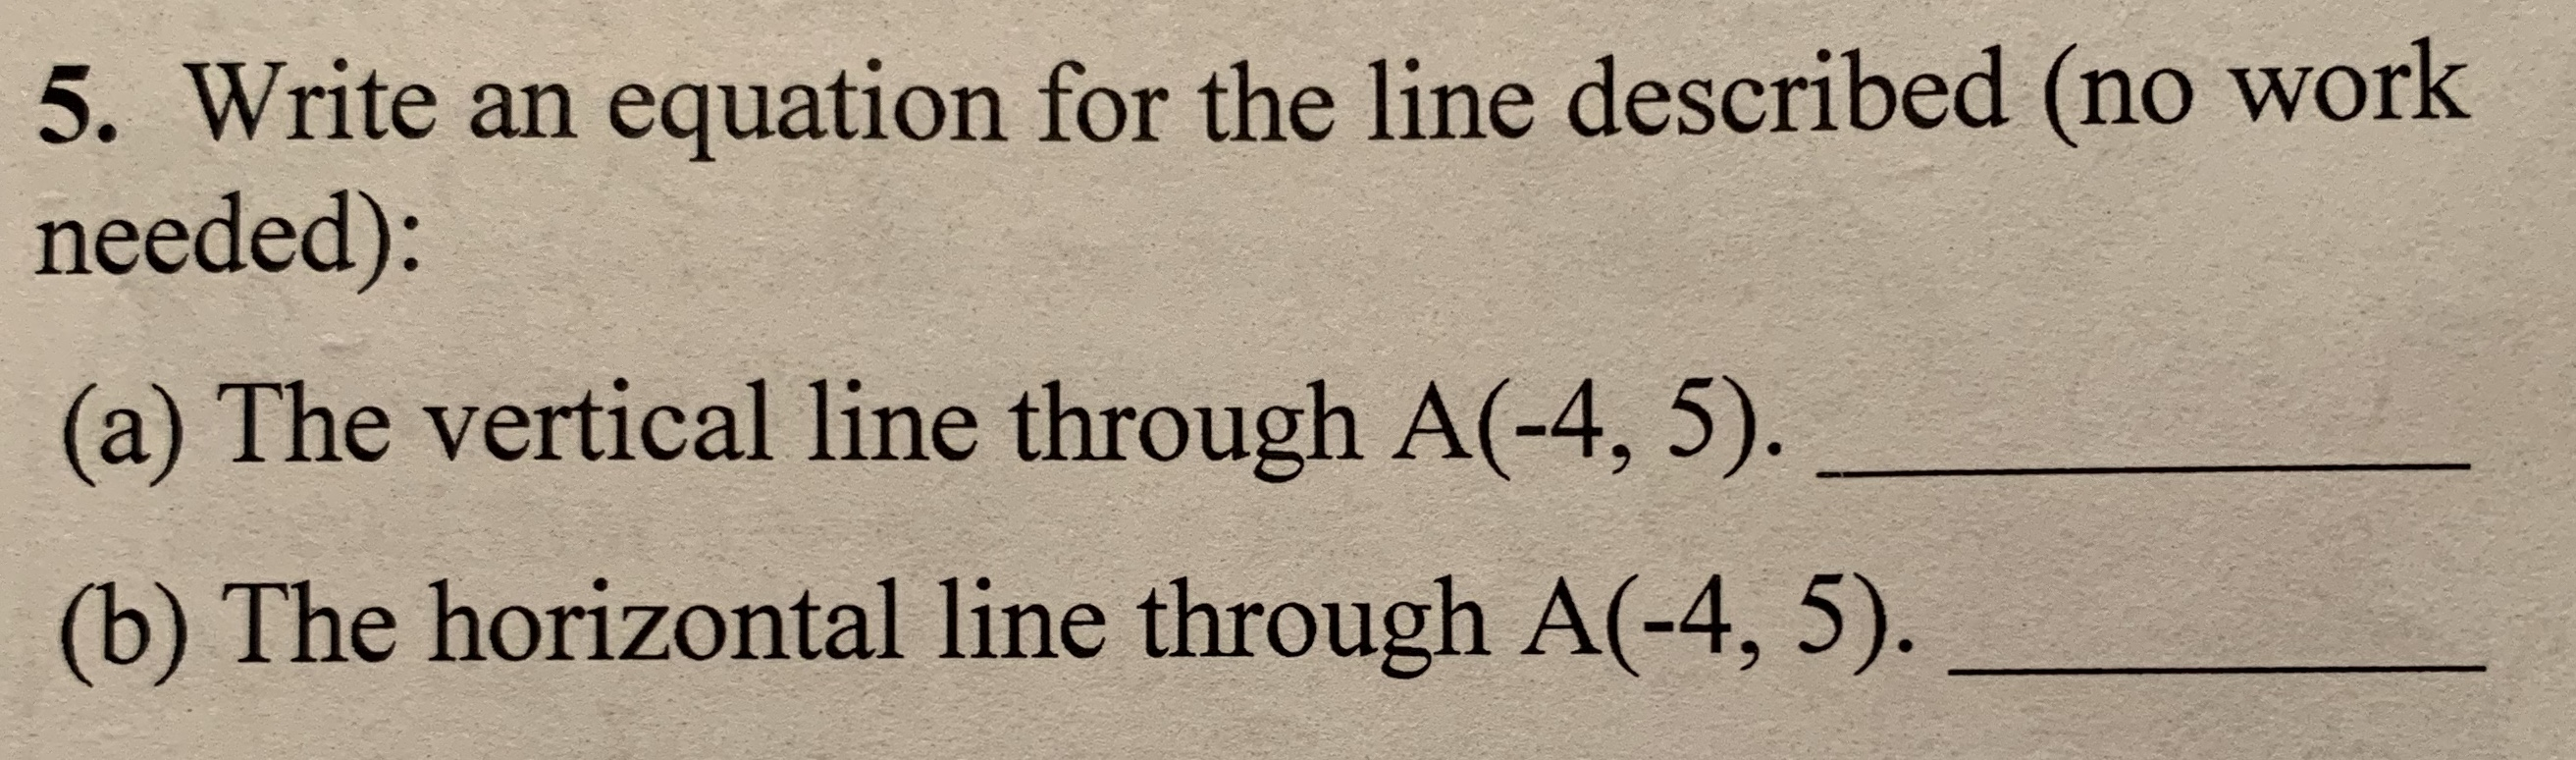 5. Write an equation for the line described (no work needed): (a) The vertical line through A(-4, 5). (b) The horizontal line through A(-4, 5).